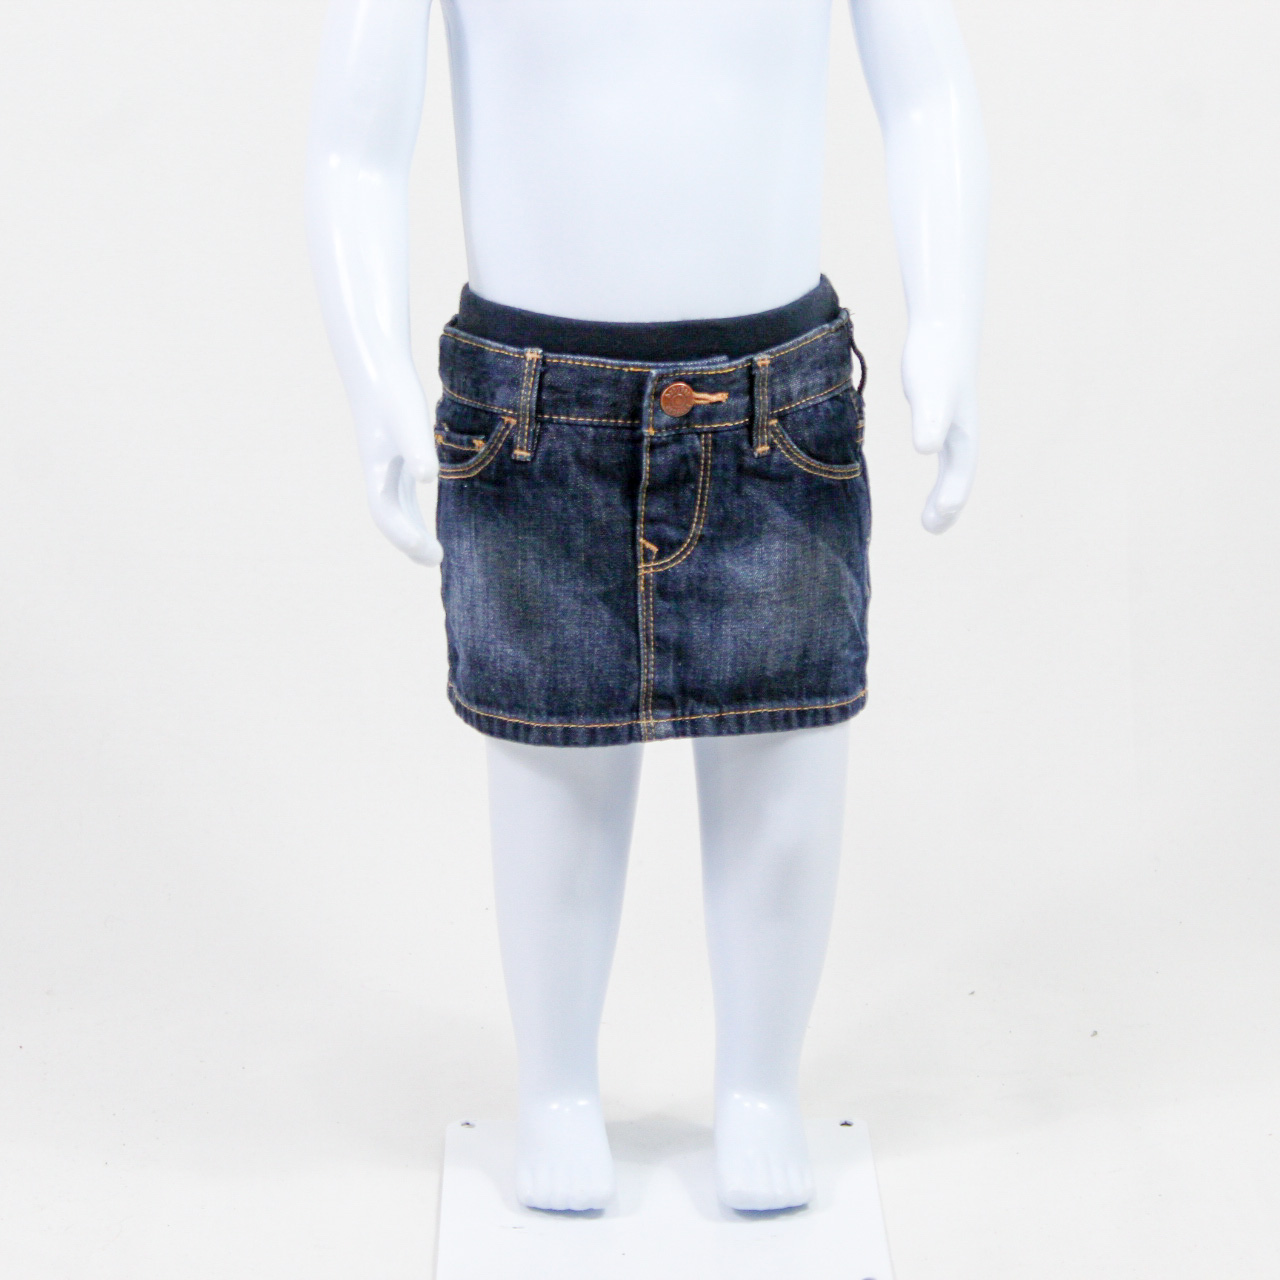 GAP- MINI SAIA JEANS